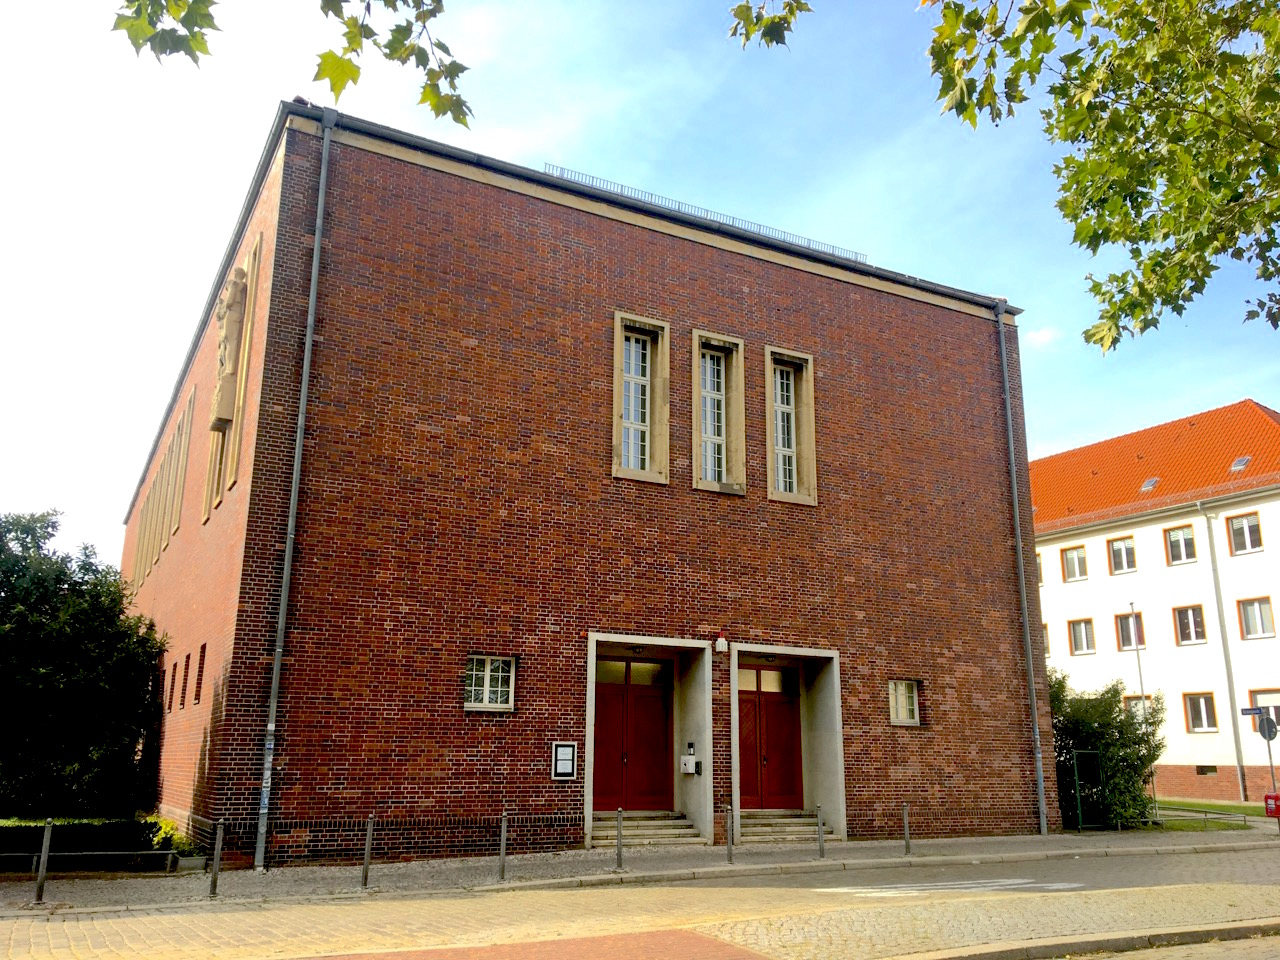 archive of the church in central Germany in Magdeburg